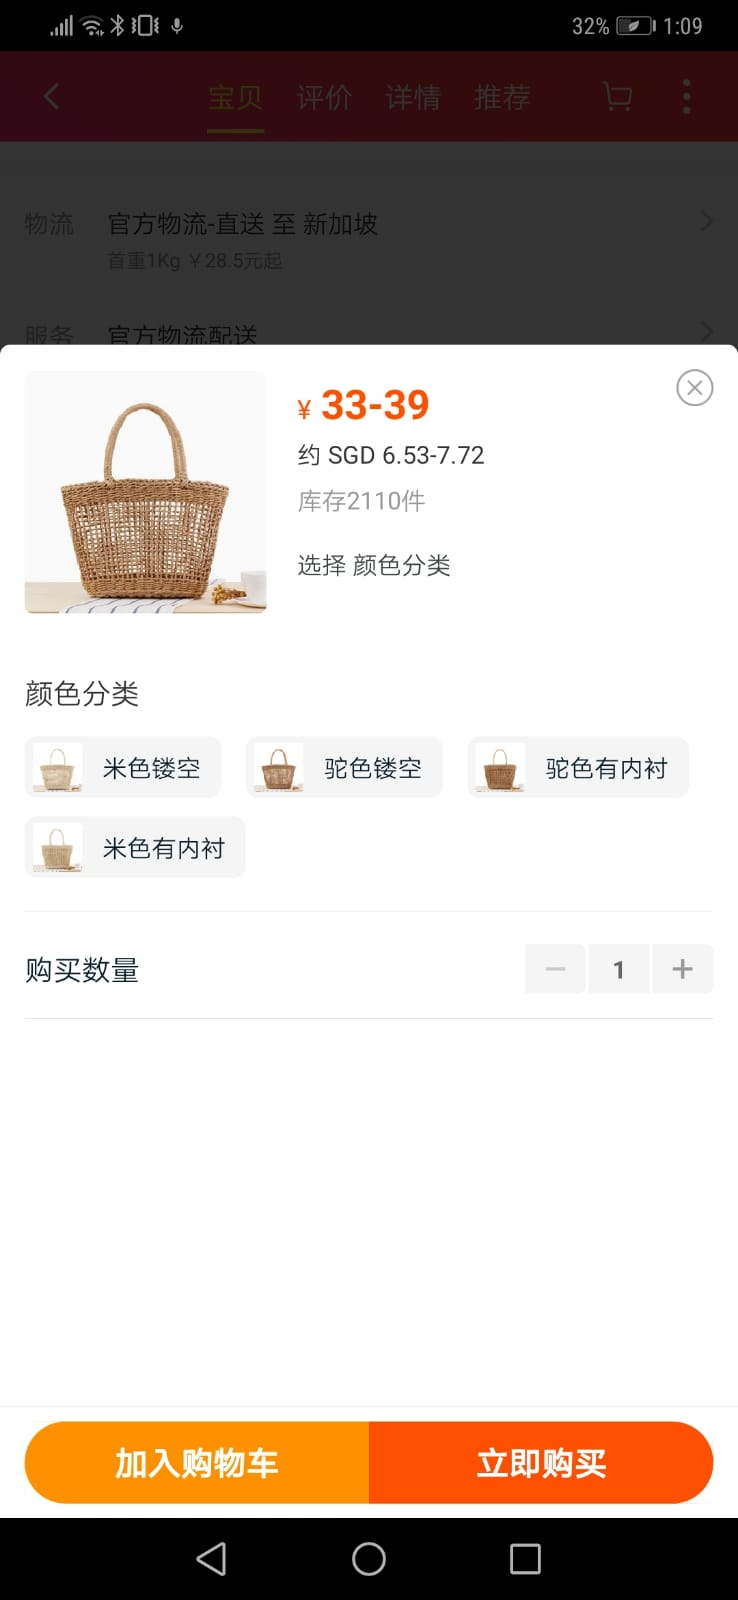 How to start shopping on Taobao - a Taobao beginner's guide for Singapore new users - Alvinology